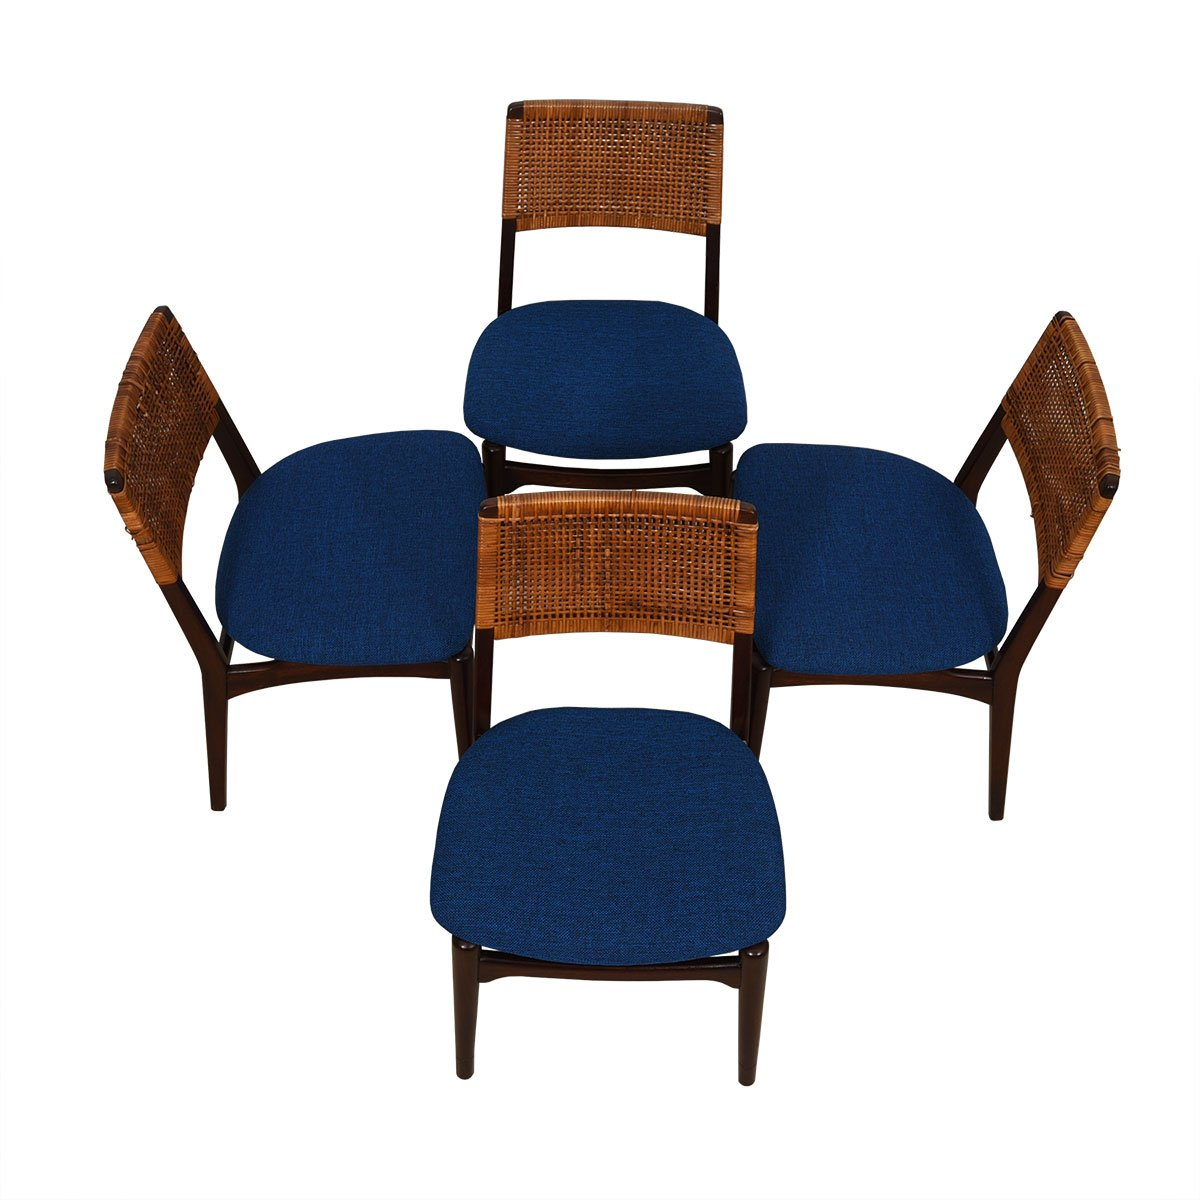 Set of 4 Petite 1950's Dining Chairs w/ New Upholstery